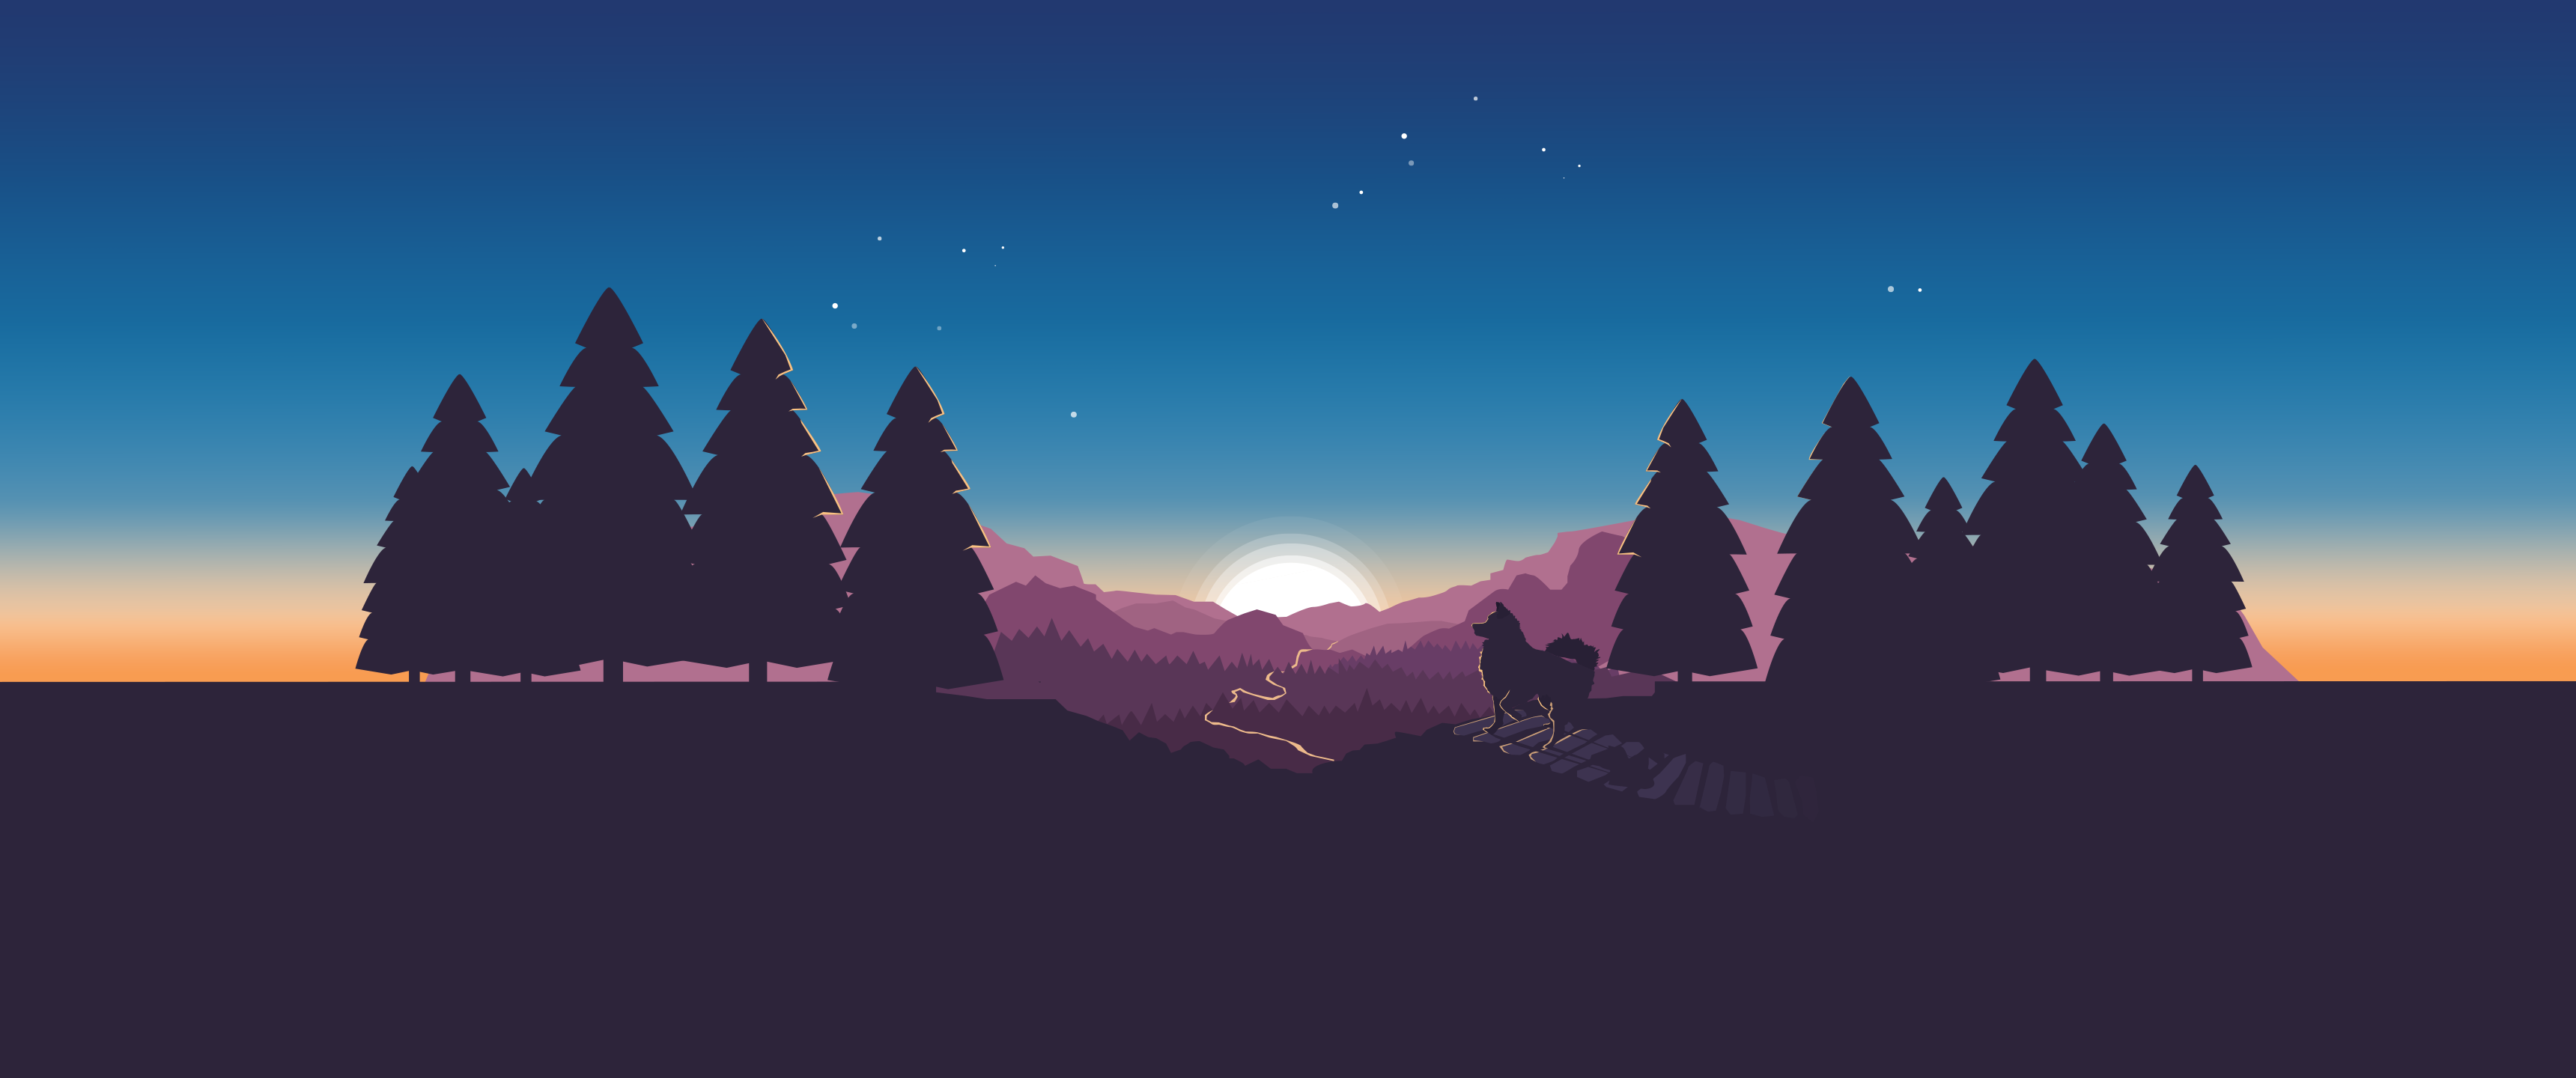 background vector wallpaper art - photo #8